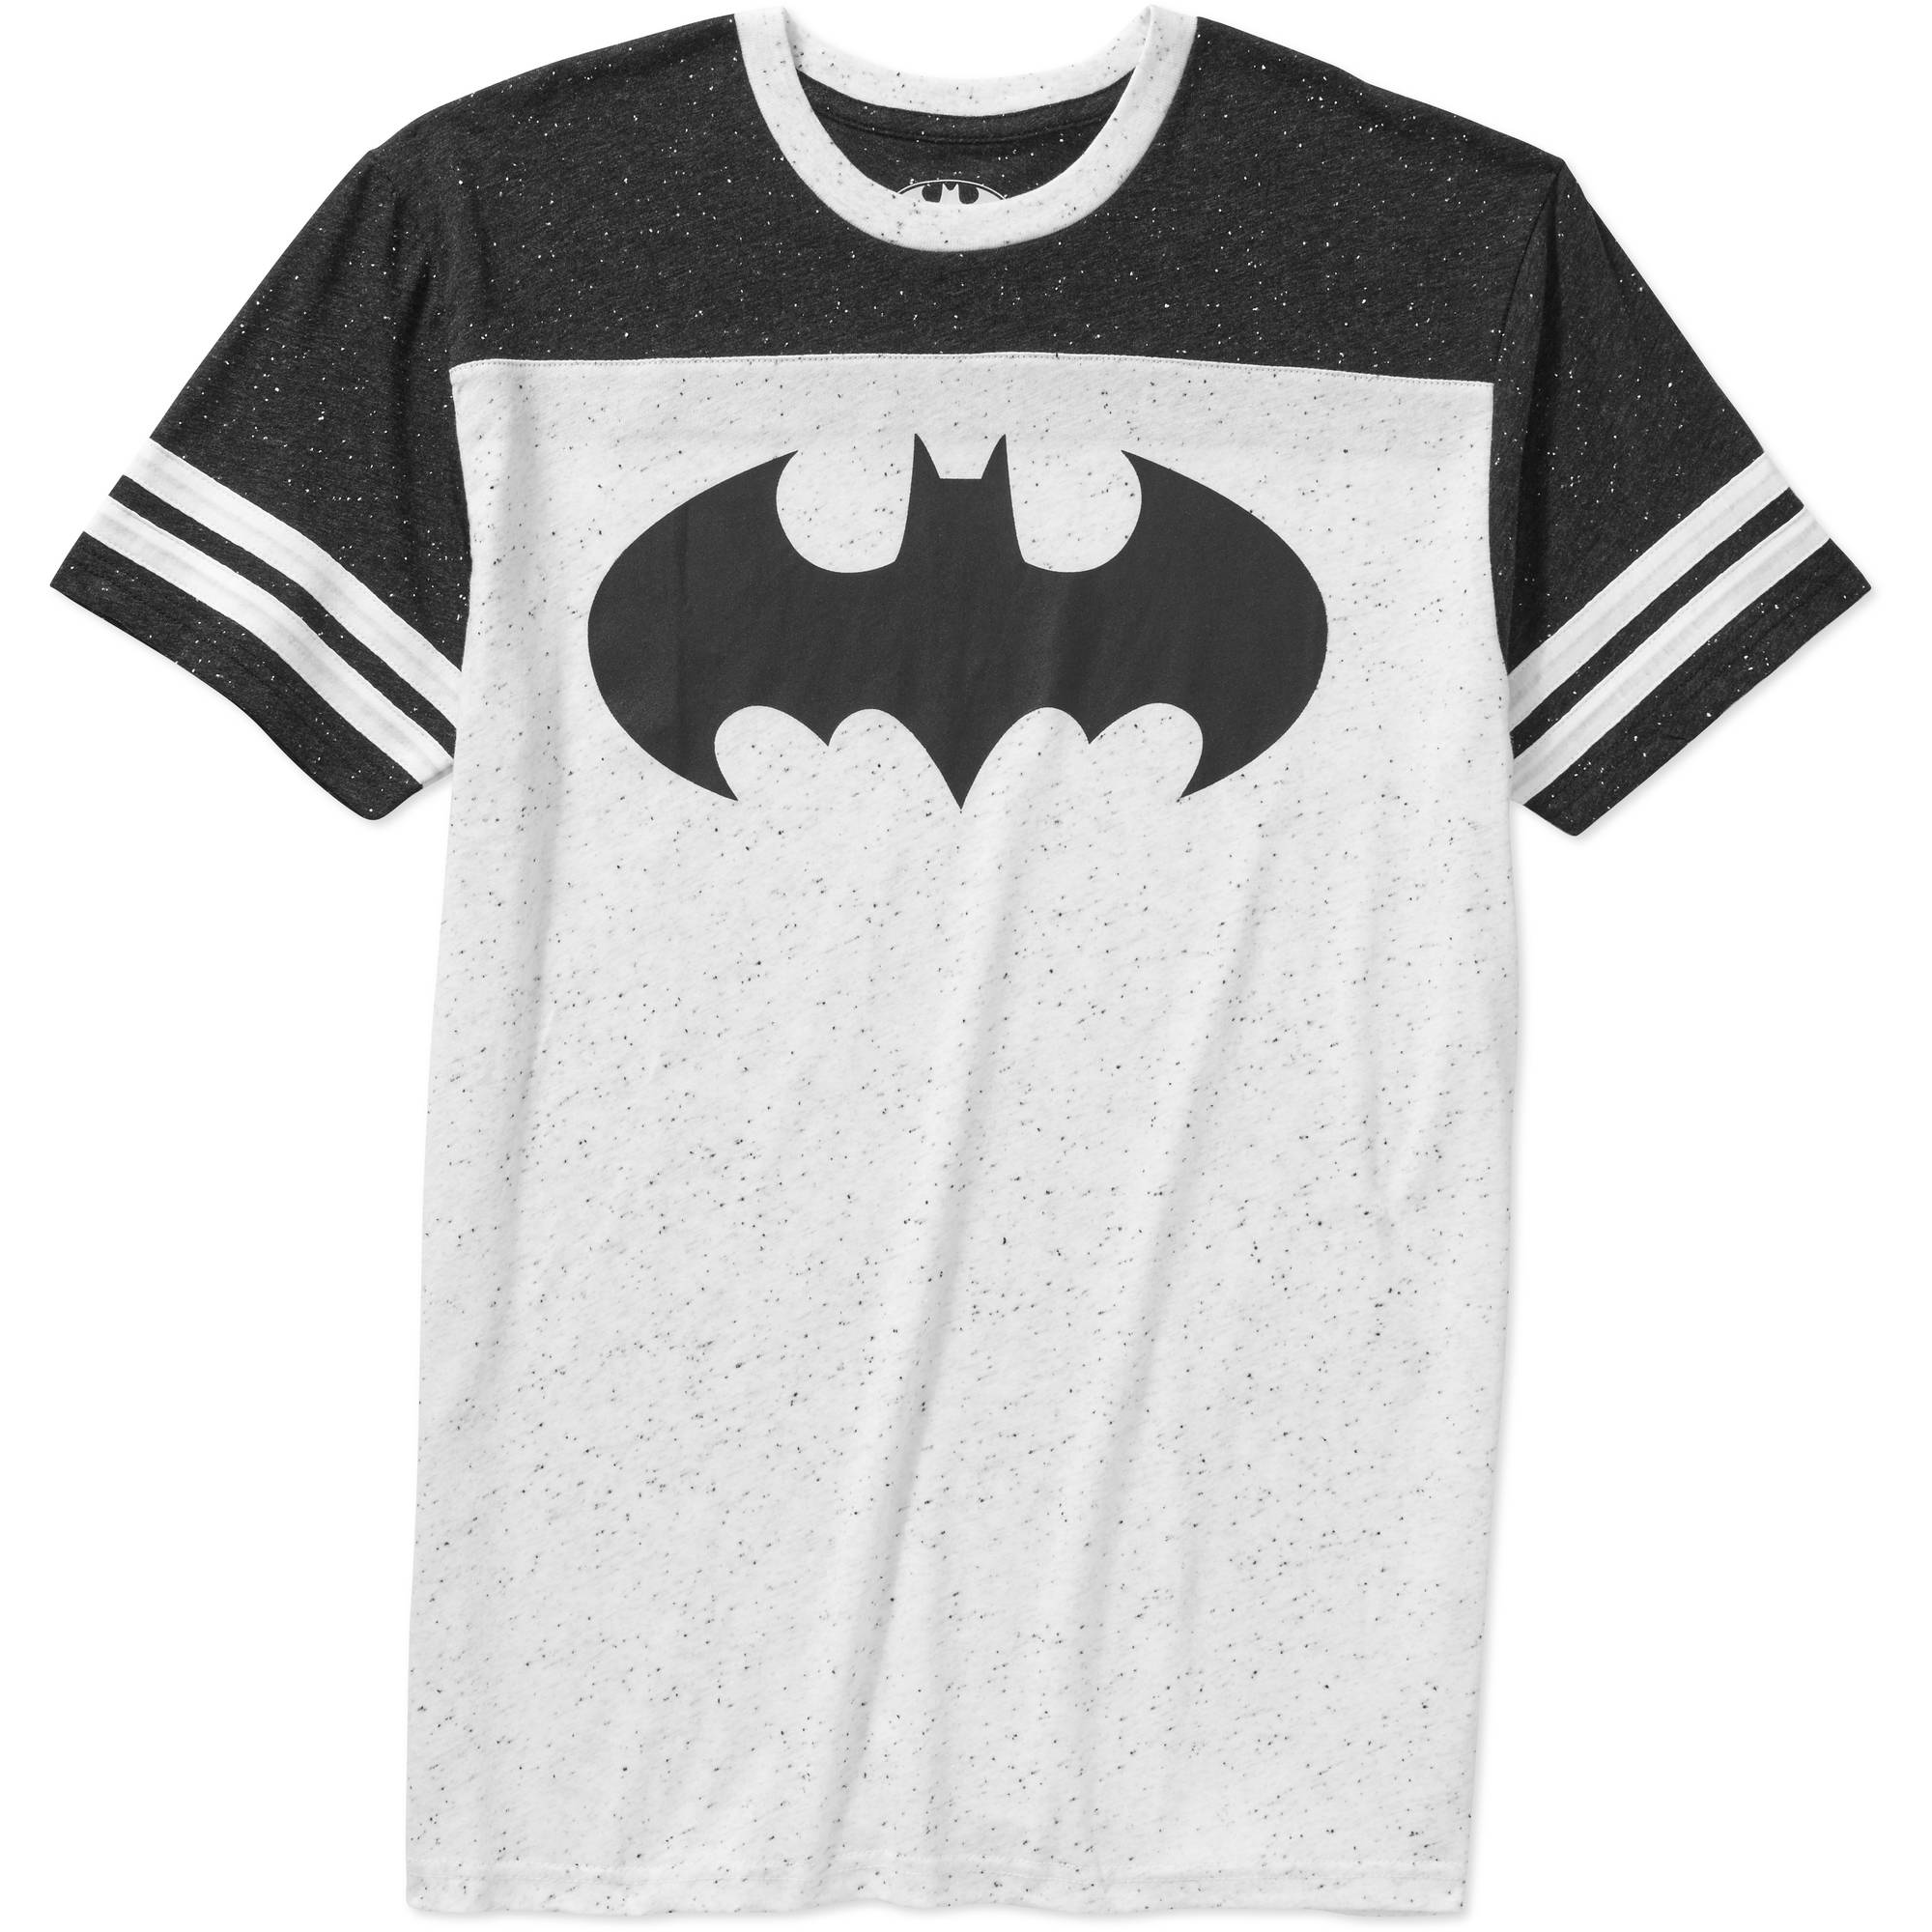 Batman Logo Black and White Big Men's Knit Ringer Sleeve Graphic Tee, 2XL